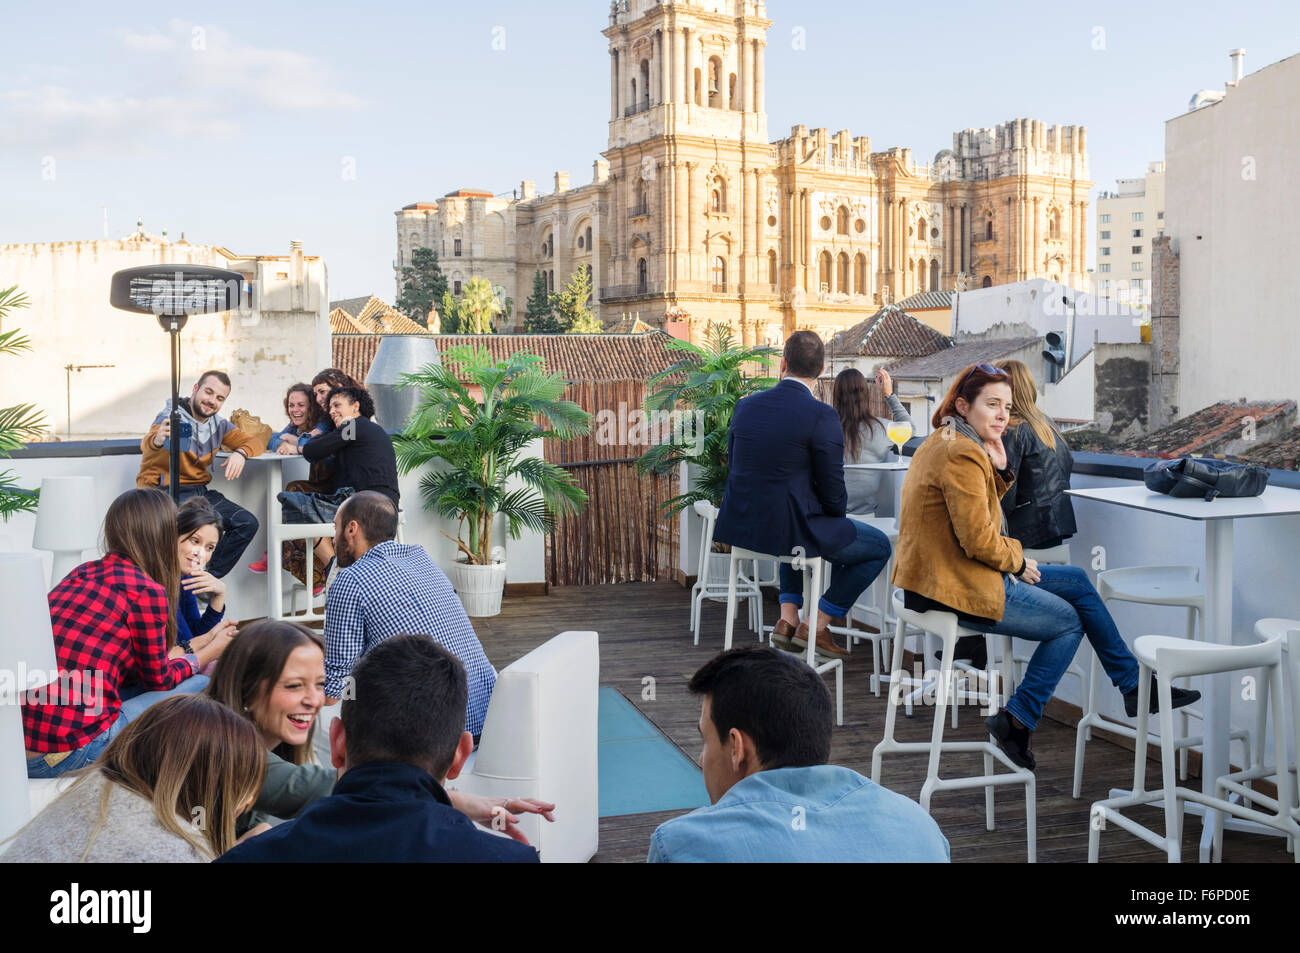 People at outdoors rooftop bar of Chinitas Urban Hostel with Cathedral in background. Malaga, Andalusia, Spain - Stock Image